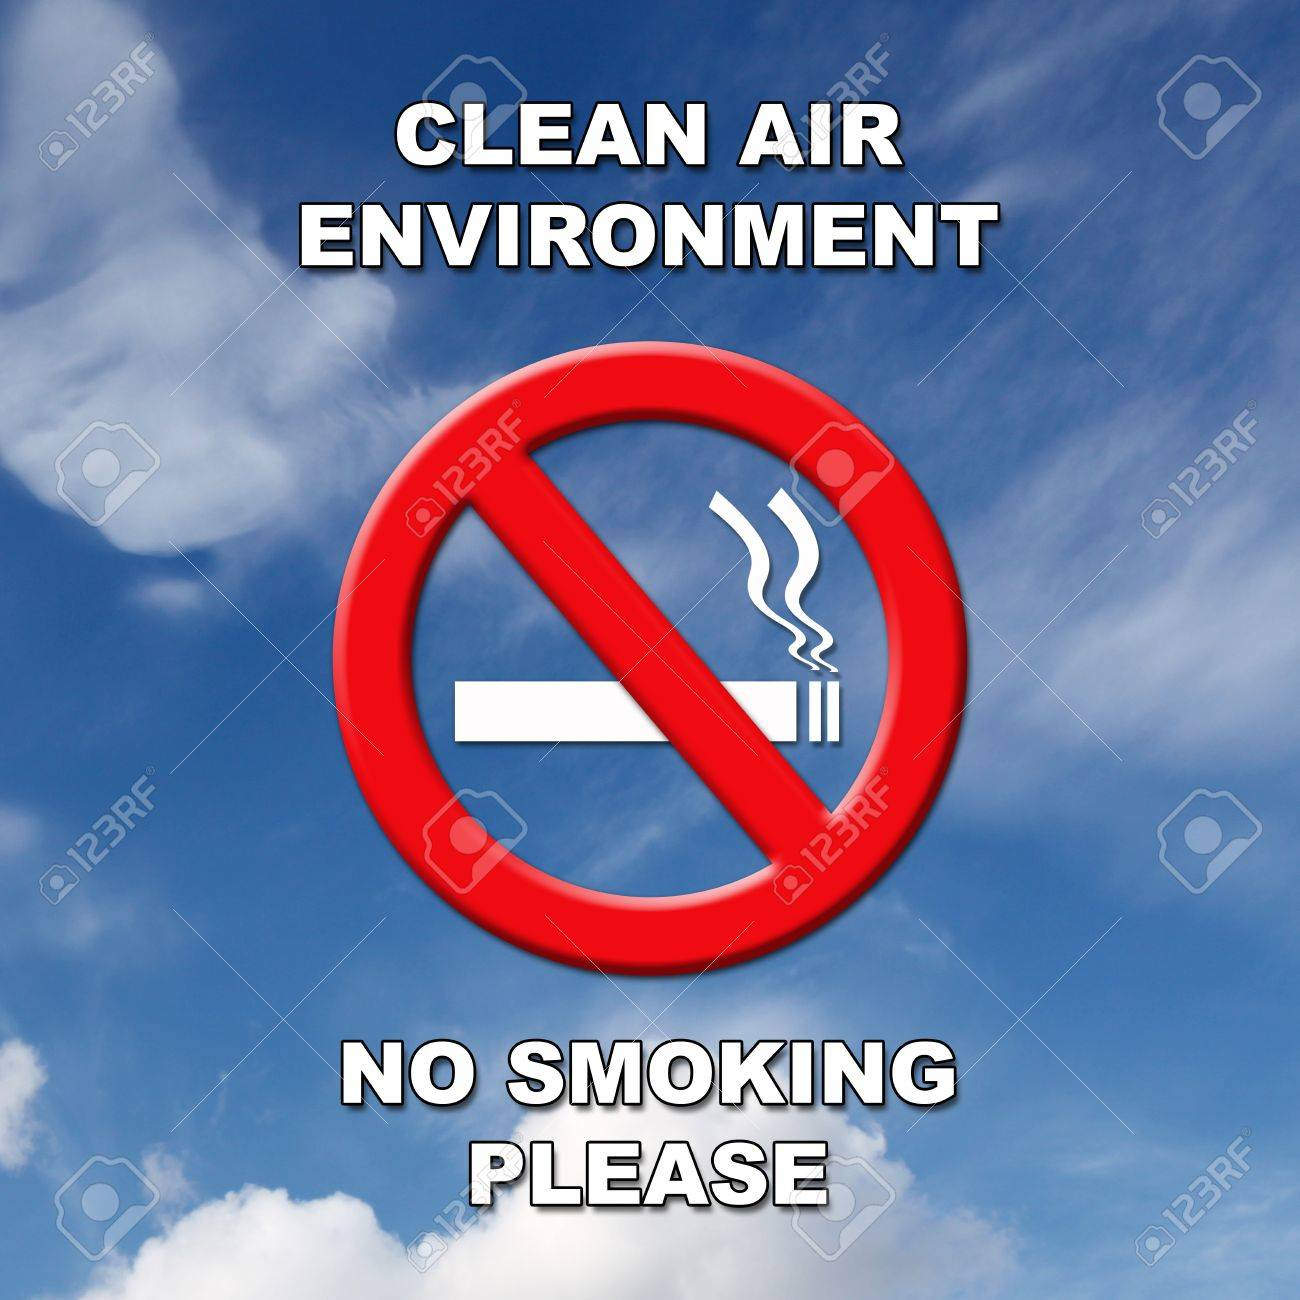 Clean air, no smoking sign in black and white text on a blue sky and cloud background. Stock Photo - 12535065